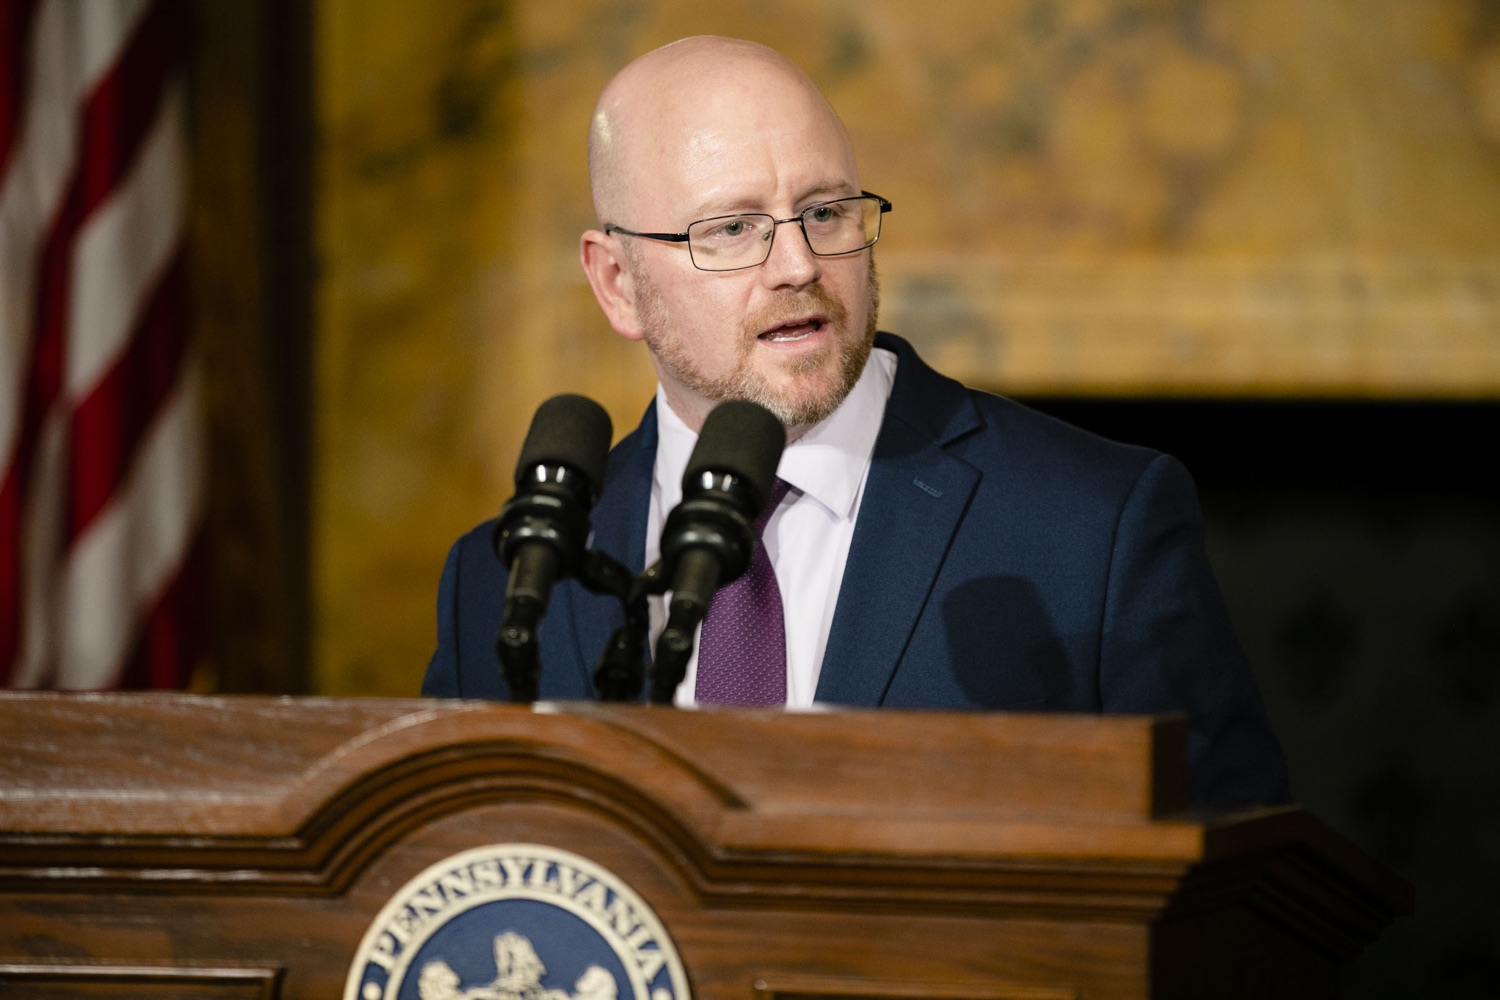 "<a href=""http://filesource.abacast.com/commonwealthofpa/photo/17564_GOV_aca_amb_011.jpg"" target=""_blank"">⇣ Download Photo<br></a>Governor Tom Wolf and Insurance Commissioner Jessica Altman advised Pennsylvanians that now is the time to buy health insurance on the federal exchange, healthcare.gov, as open enrollment continues for Affordable Care Act (ACA) plans through Dec. 15. Consumers have more options in Pennsylvania, and many will find they qualify for subsidies. November 7, 2019. Harrisburg, PA."